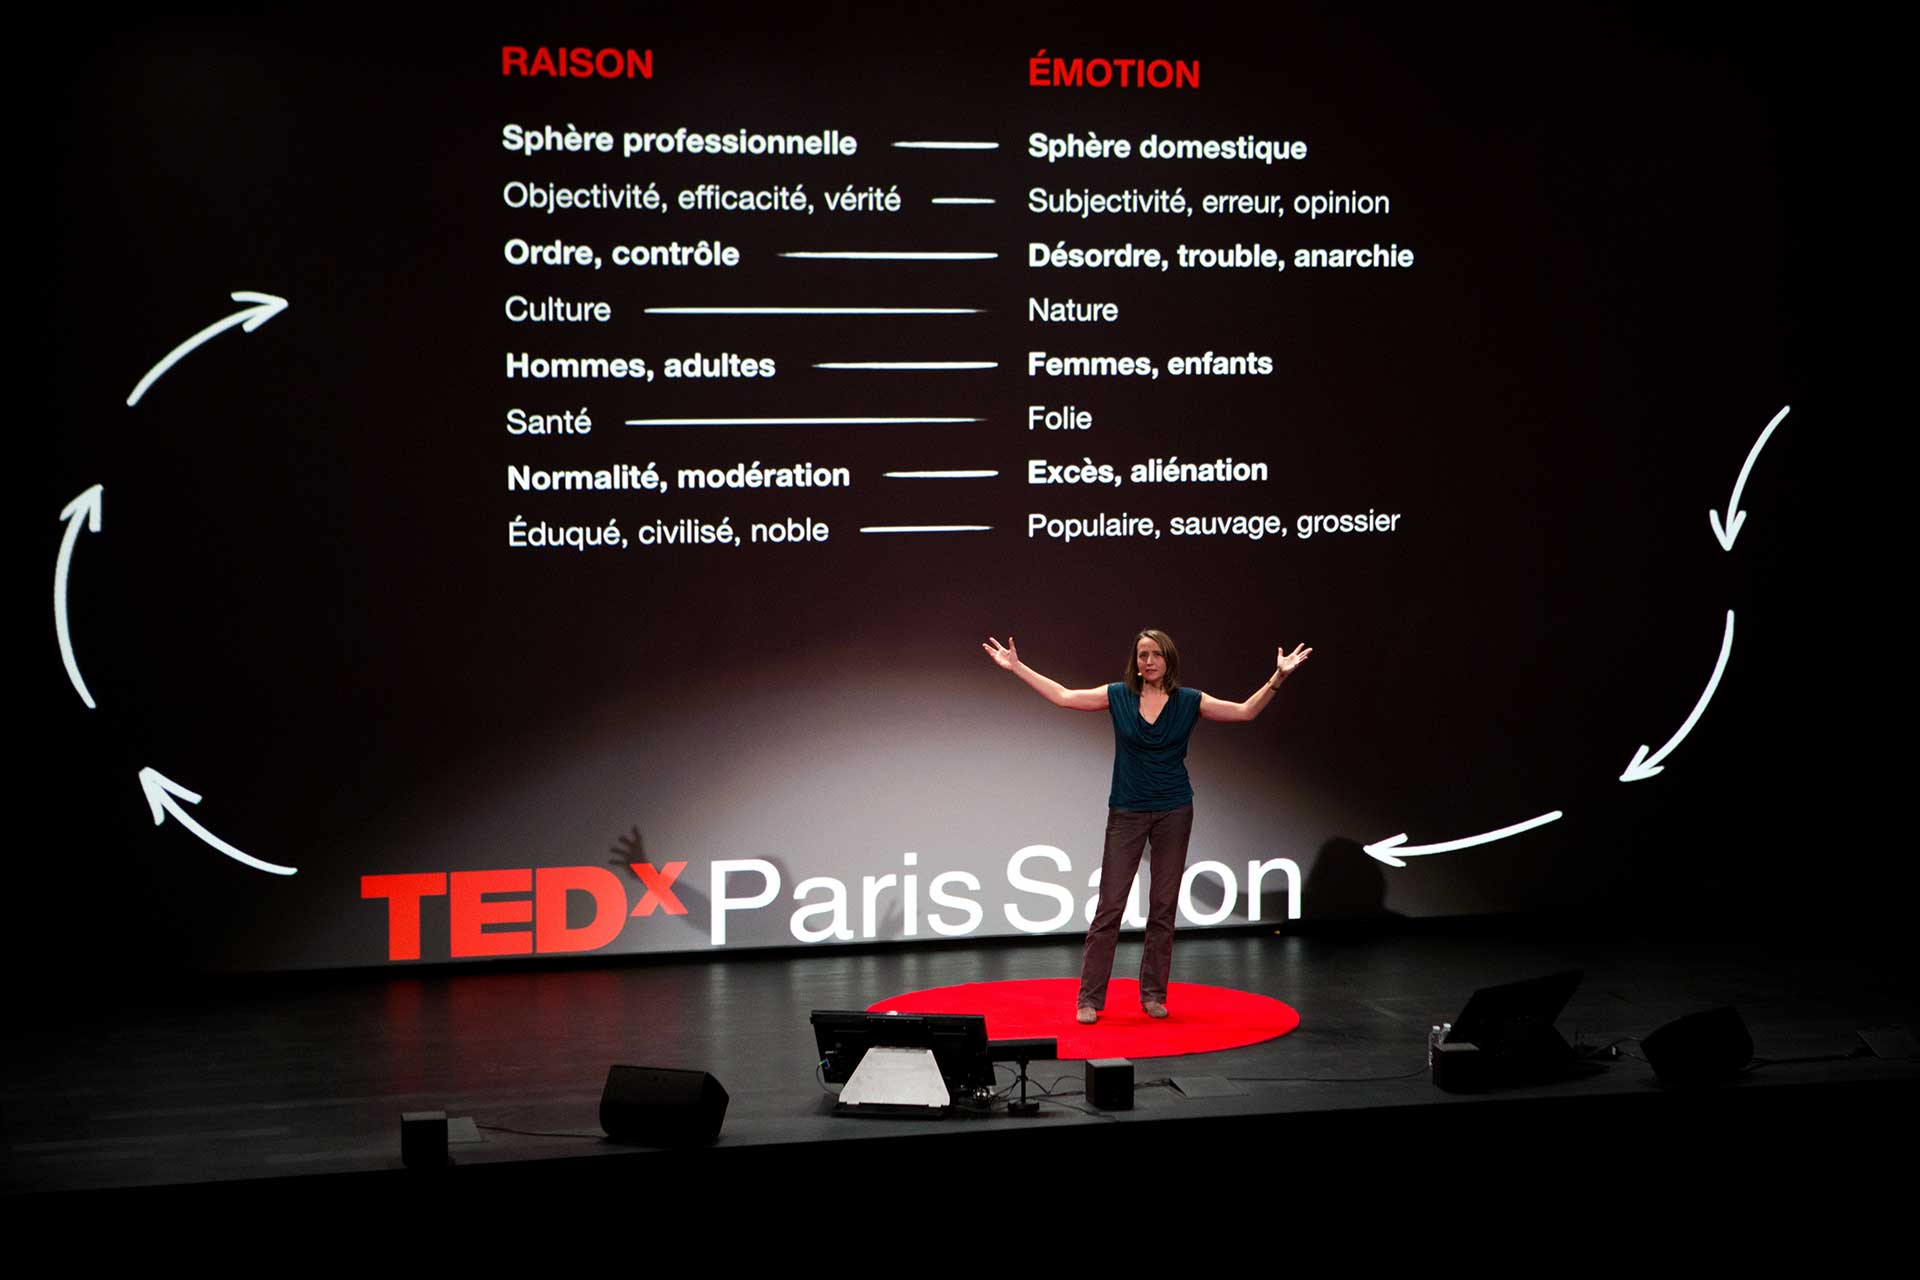 conference-TEDxParisSalon-2019-8.jpg